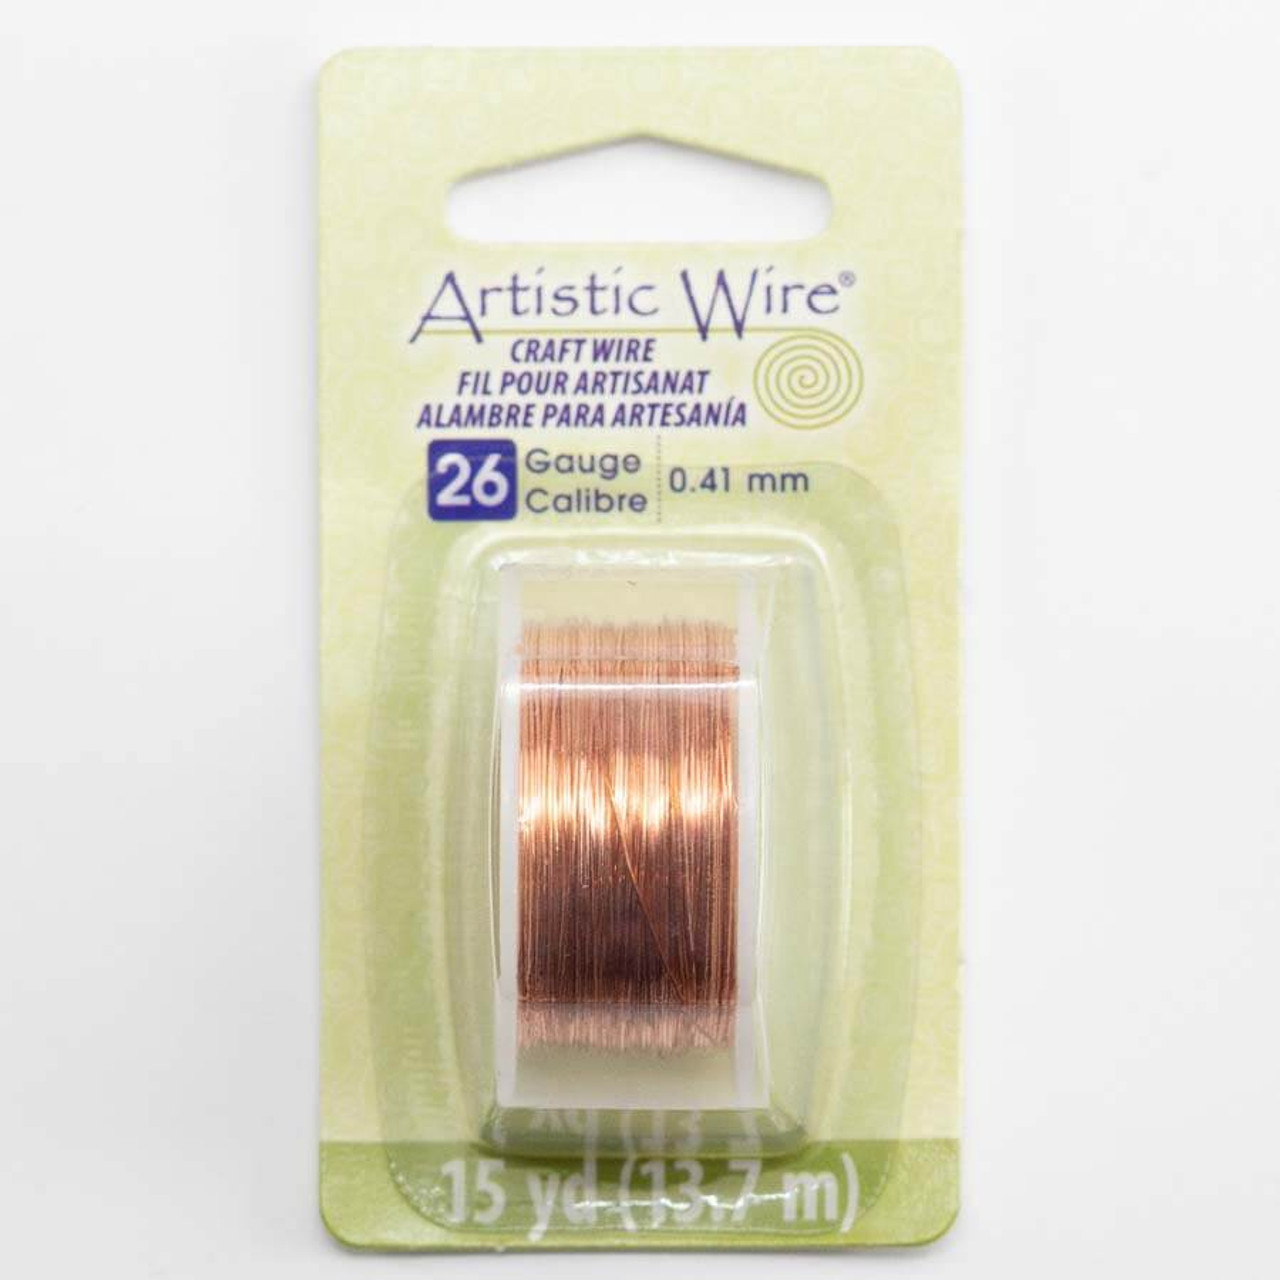 20 Gauge Bare Copper Artistic Wire Spool 15 Yards Jewelry Making Tool